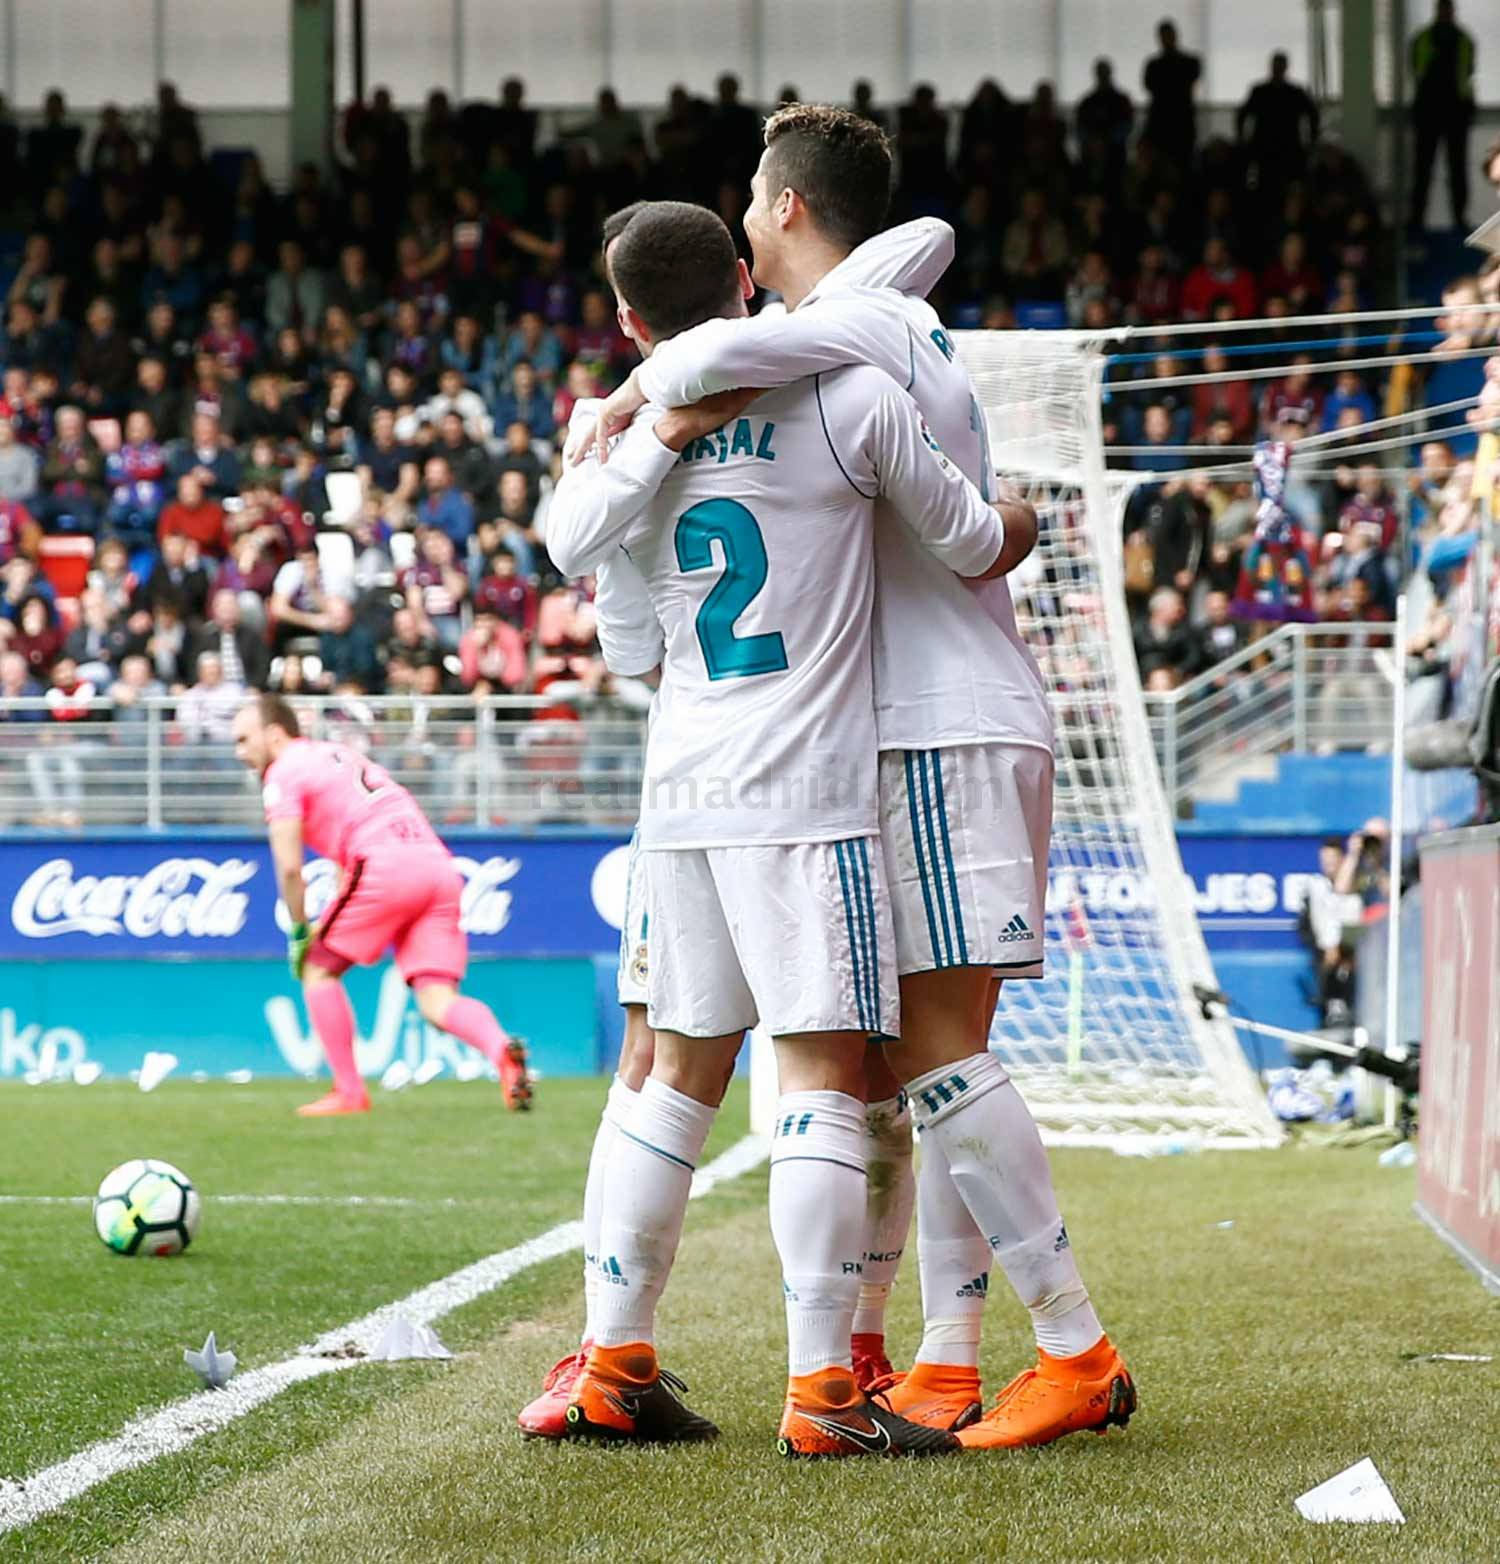 Real Madrid - Eibar - Real Madrid - 10-03-2018